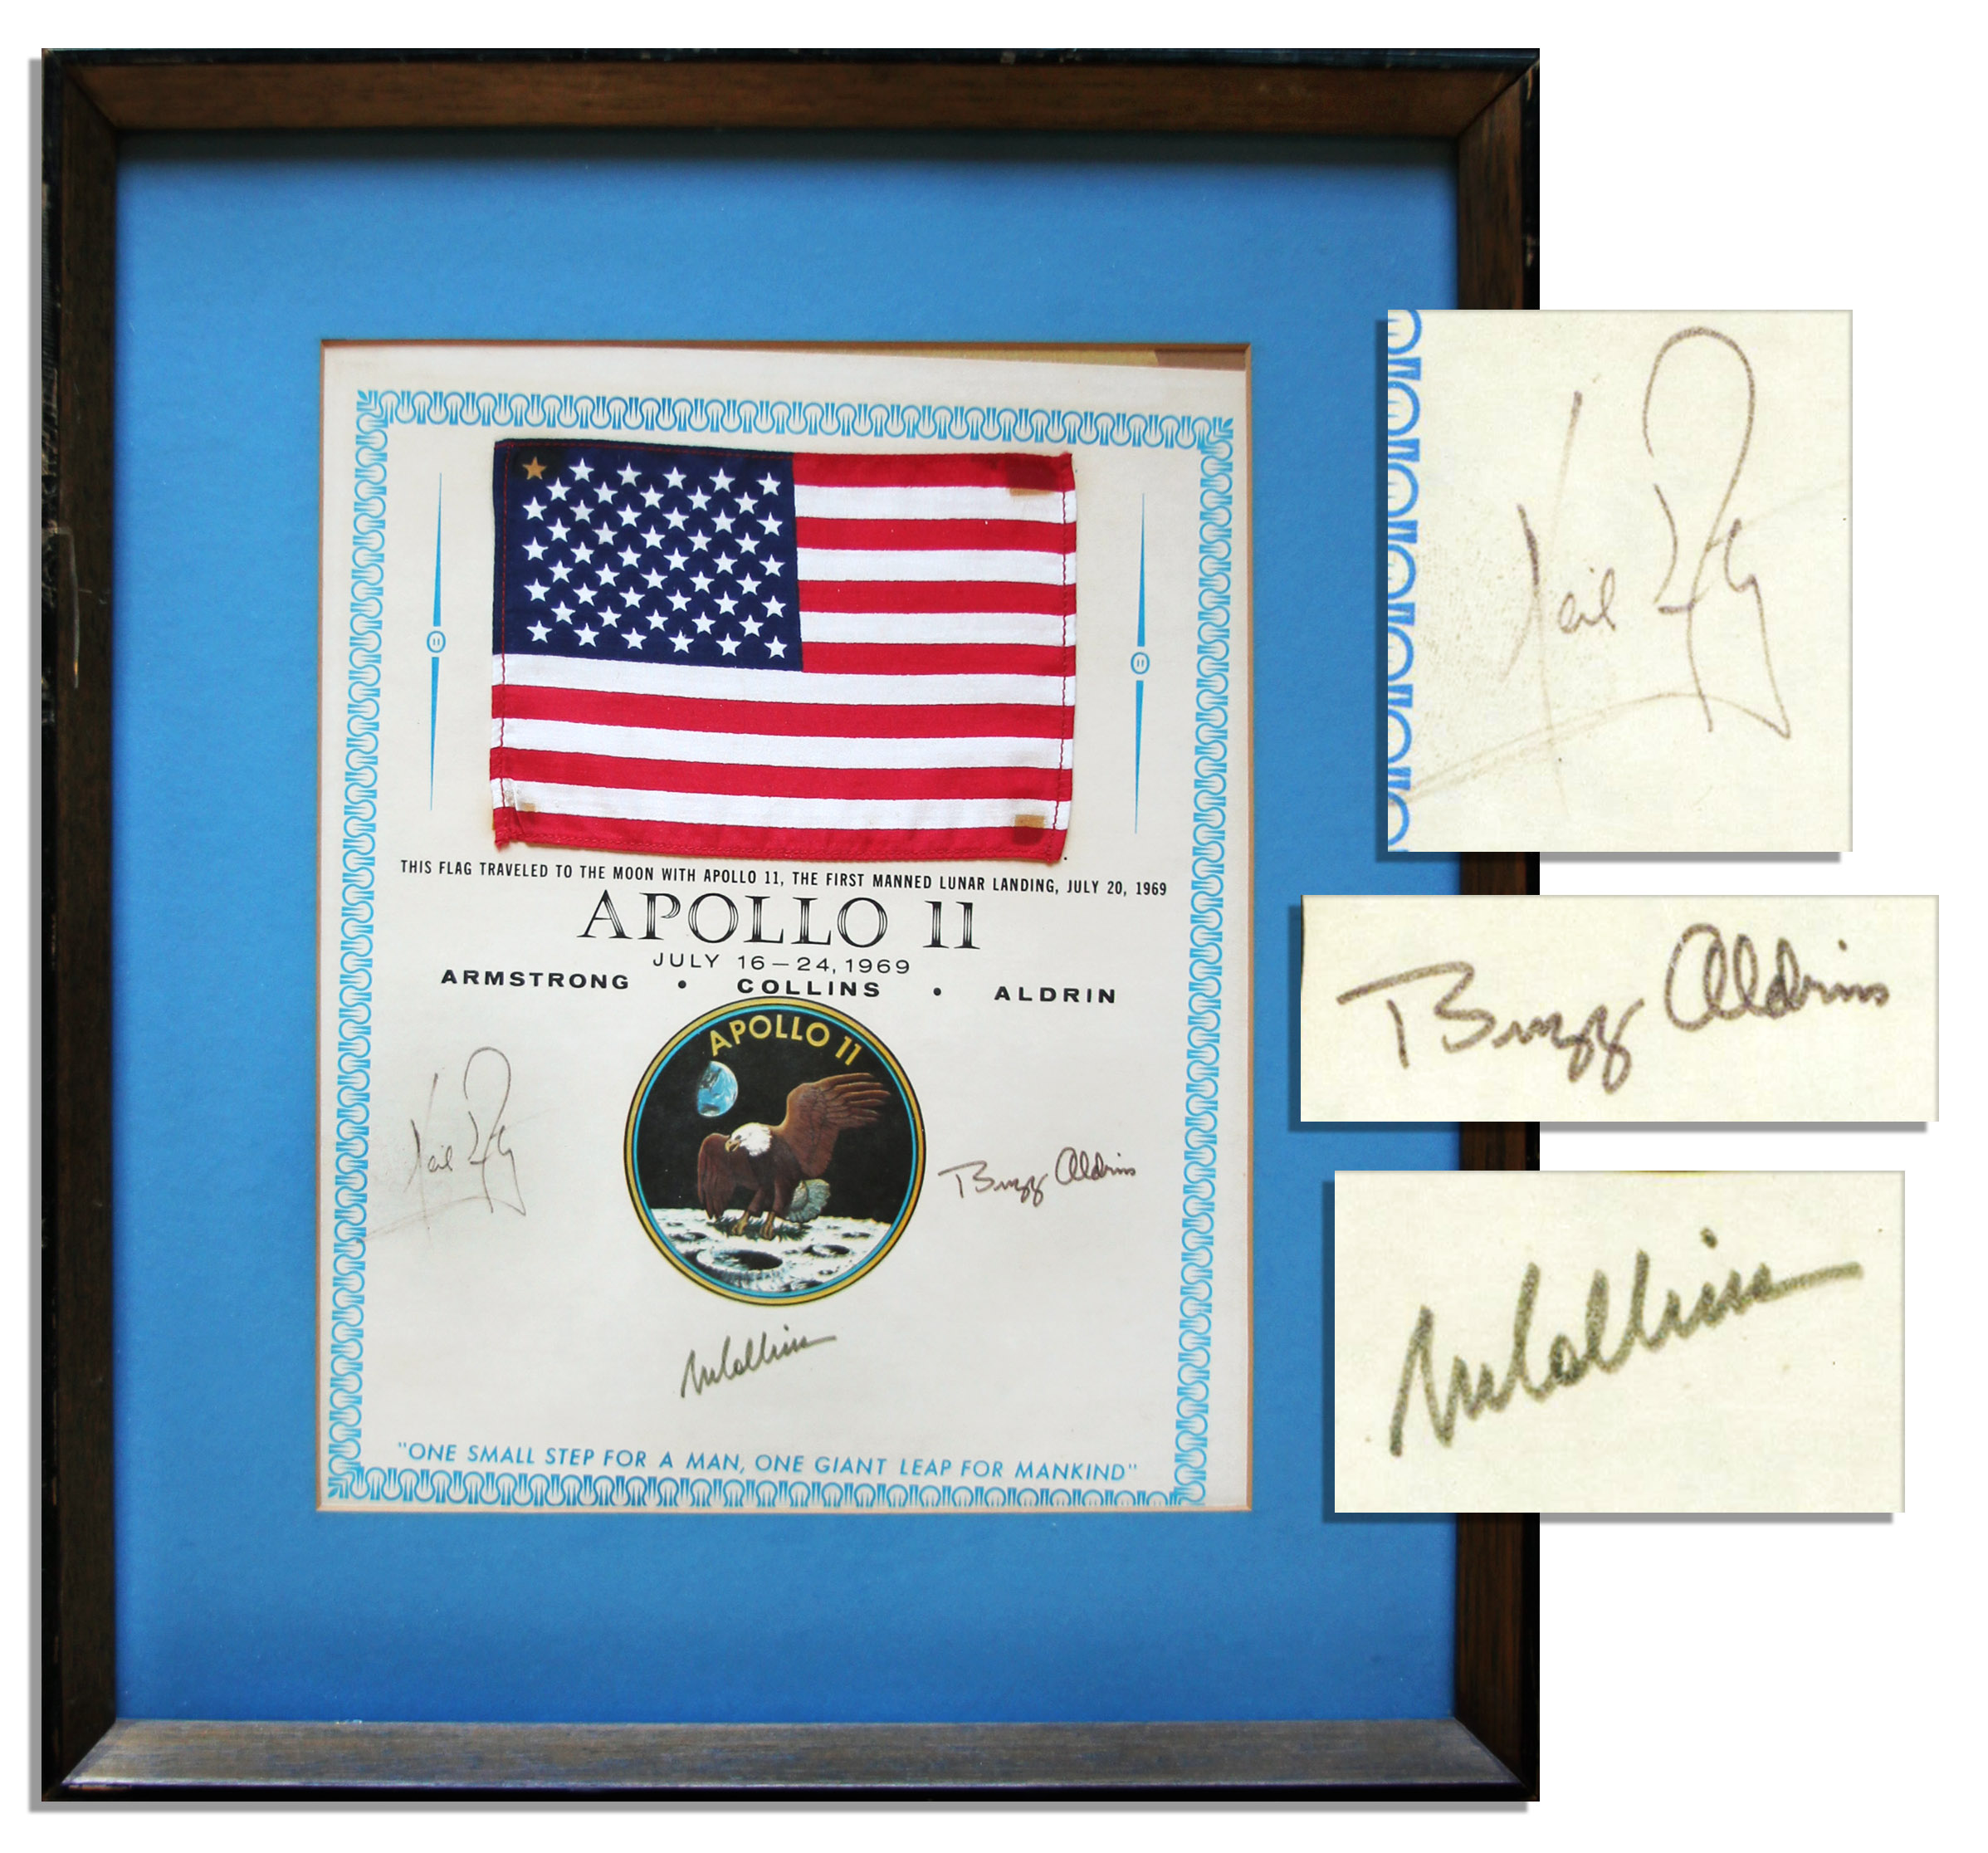 Apollo 11 Flag Flown to the Moon Apollo 11 Space-Flown Flag -- Affixed to a NASA Certificate Signed by Each of the Apollo 11 Crew Members: Neil Armstrong, Michael Collins & Buzz Aldrin -- Very Scarce